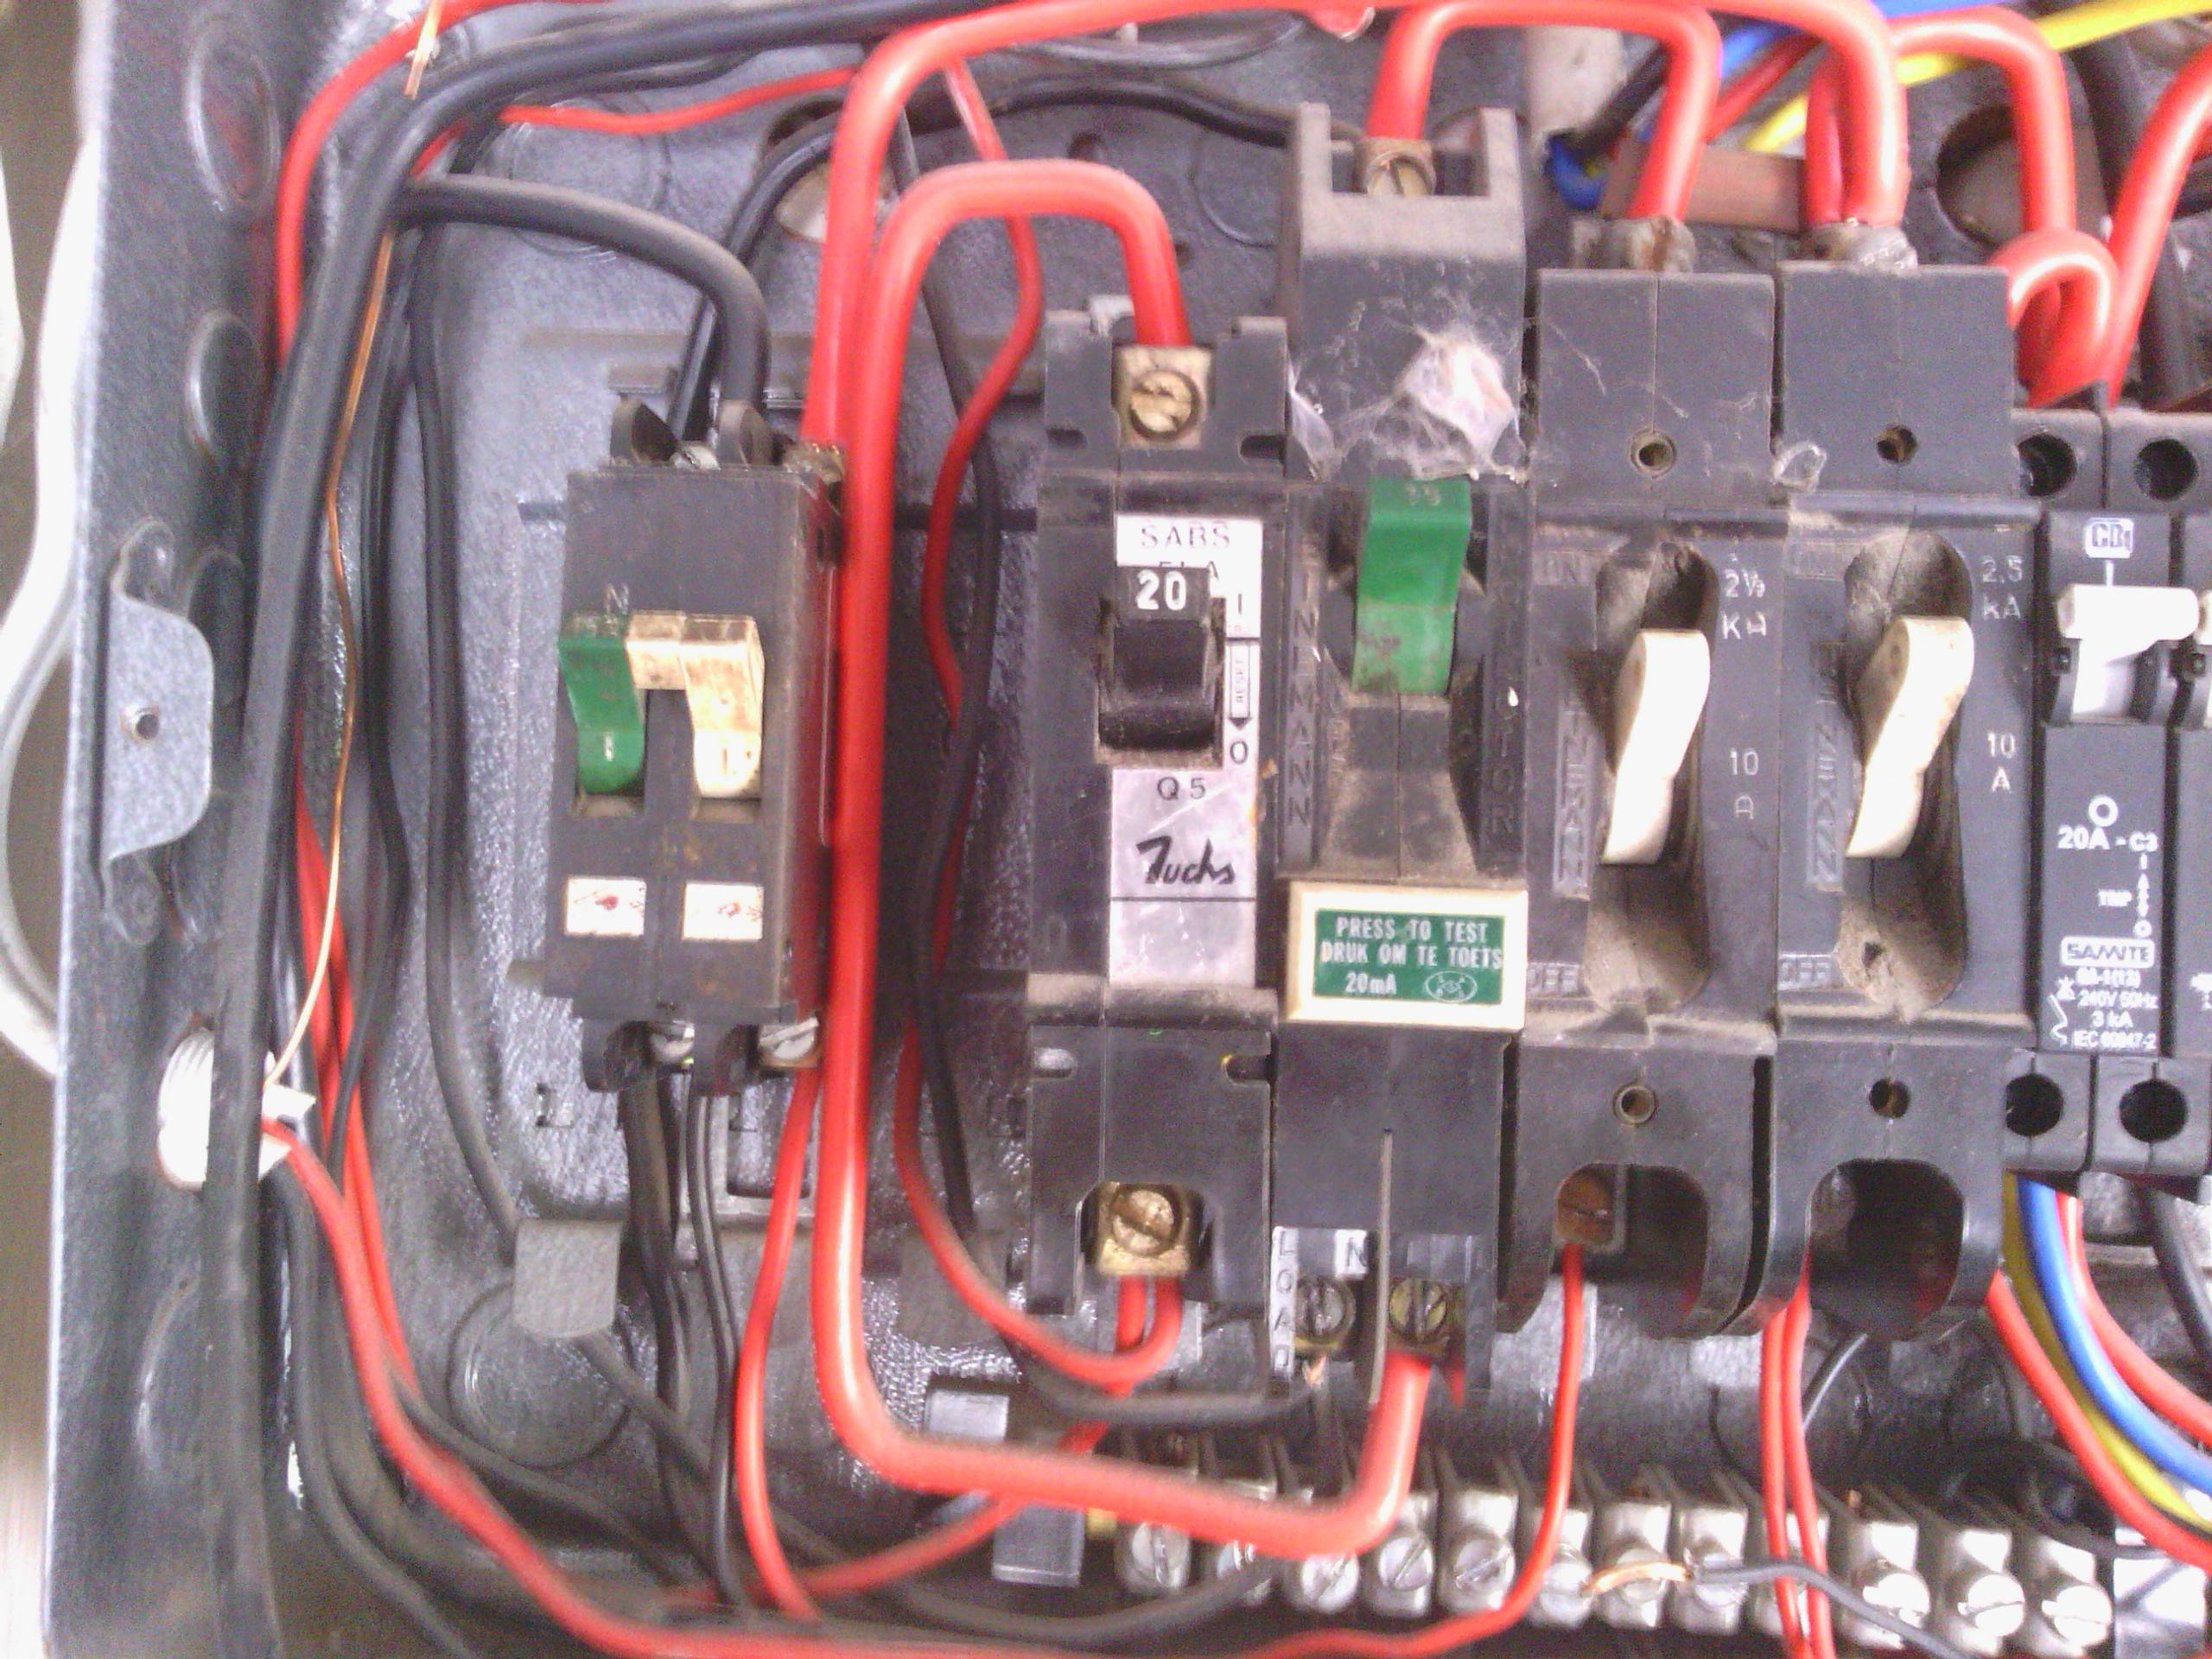 water geyser wiring diagram float level switch electrical - why two breakers (one for the line, one neutral) on a single-phase line ...